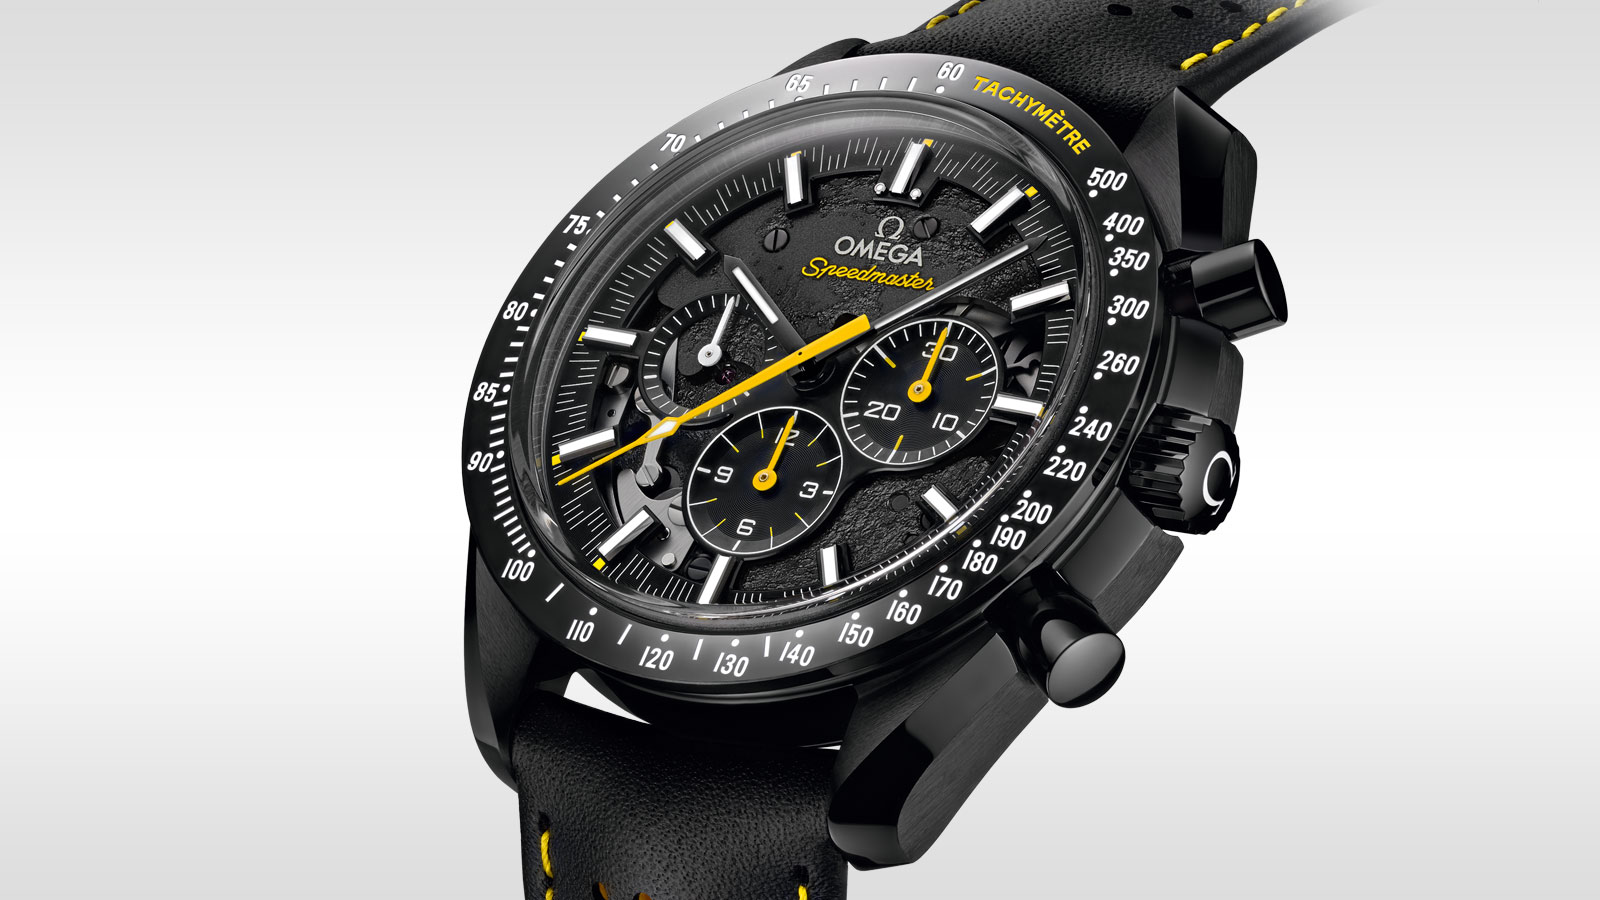 Speedmaster ムーンウォッチ Moonwatch Chronograph 44.25 mm - 311.92.44.30.01.001 - ビュー 1